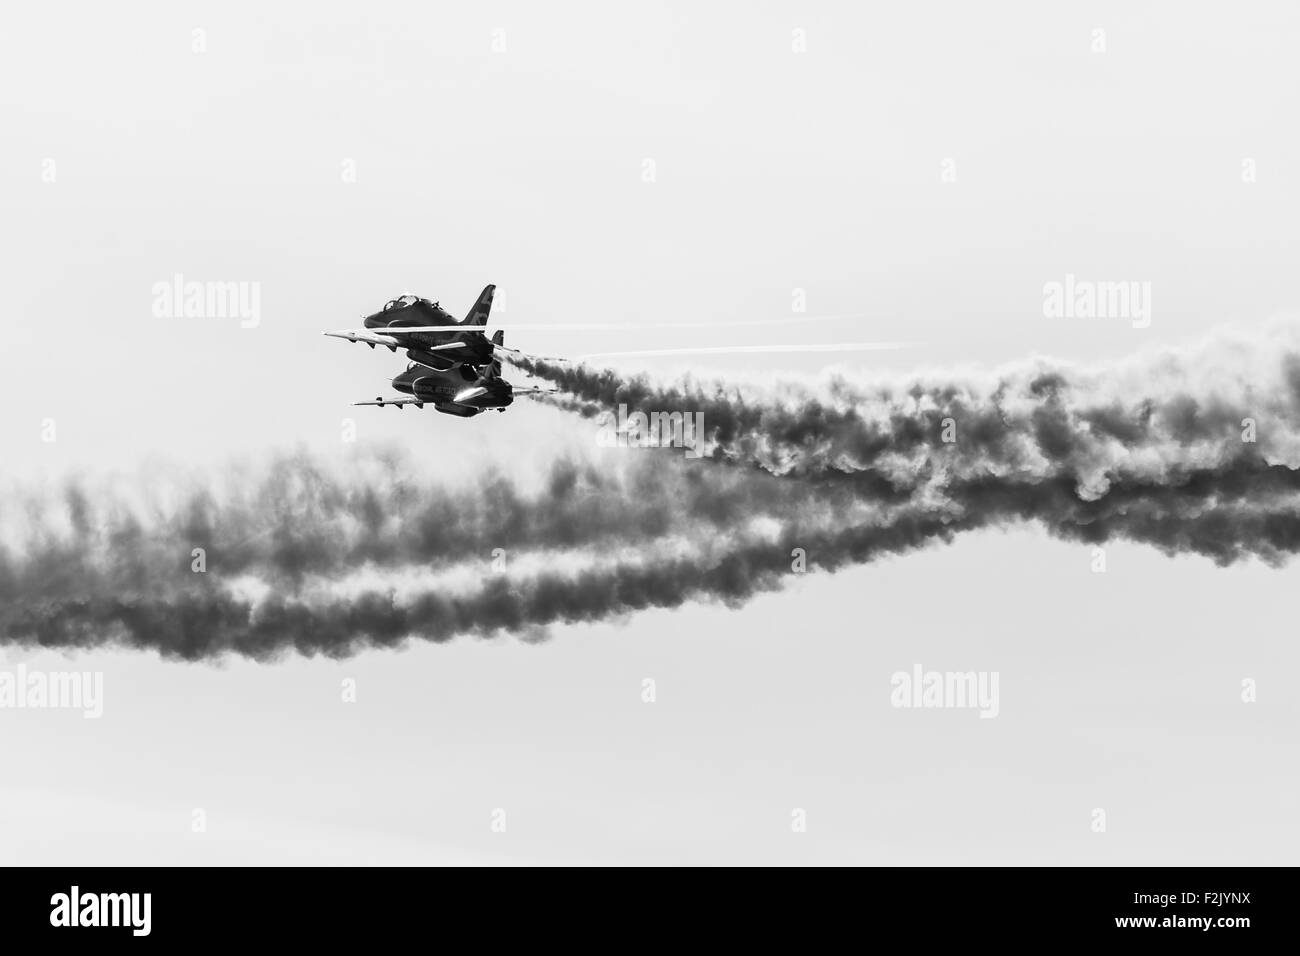 Gypo pass at Southport airshow in monochrome. - Stock Image